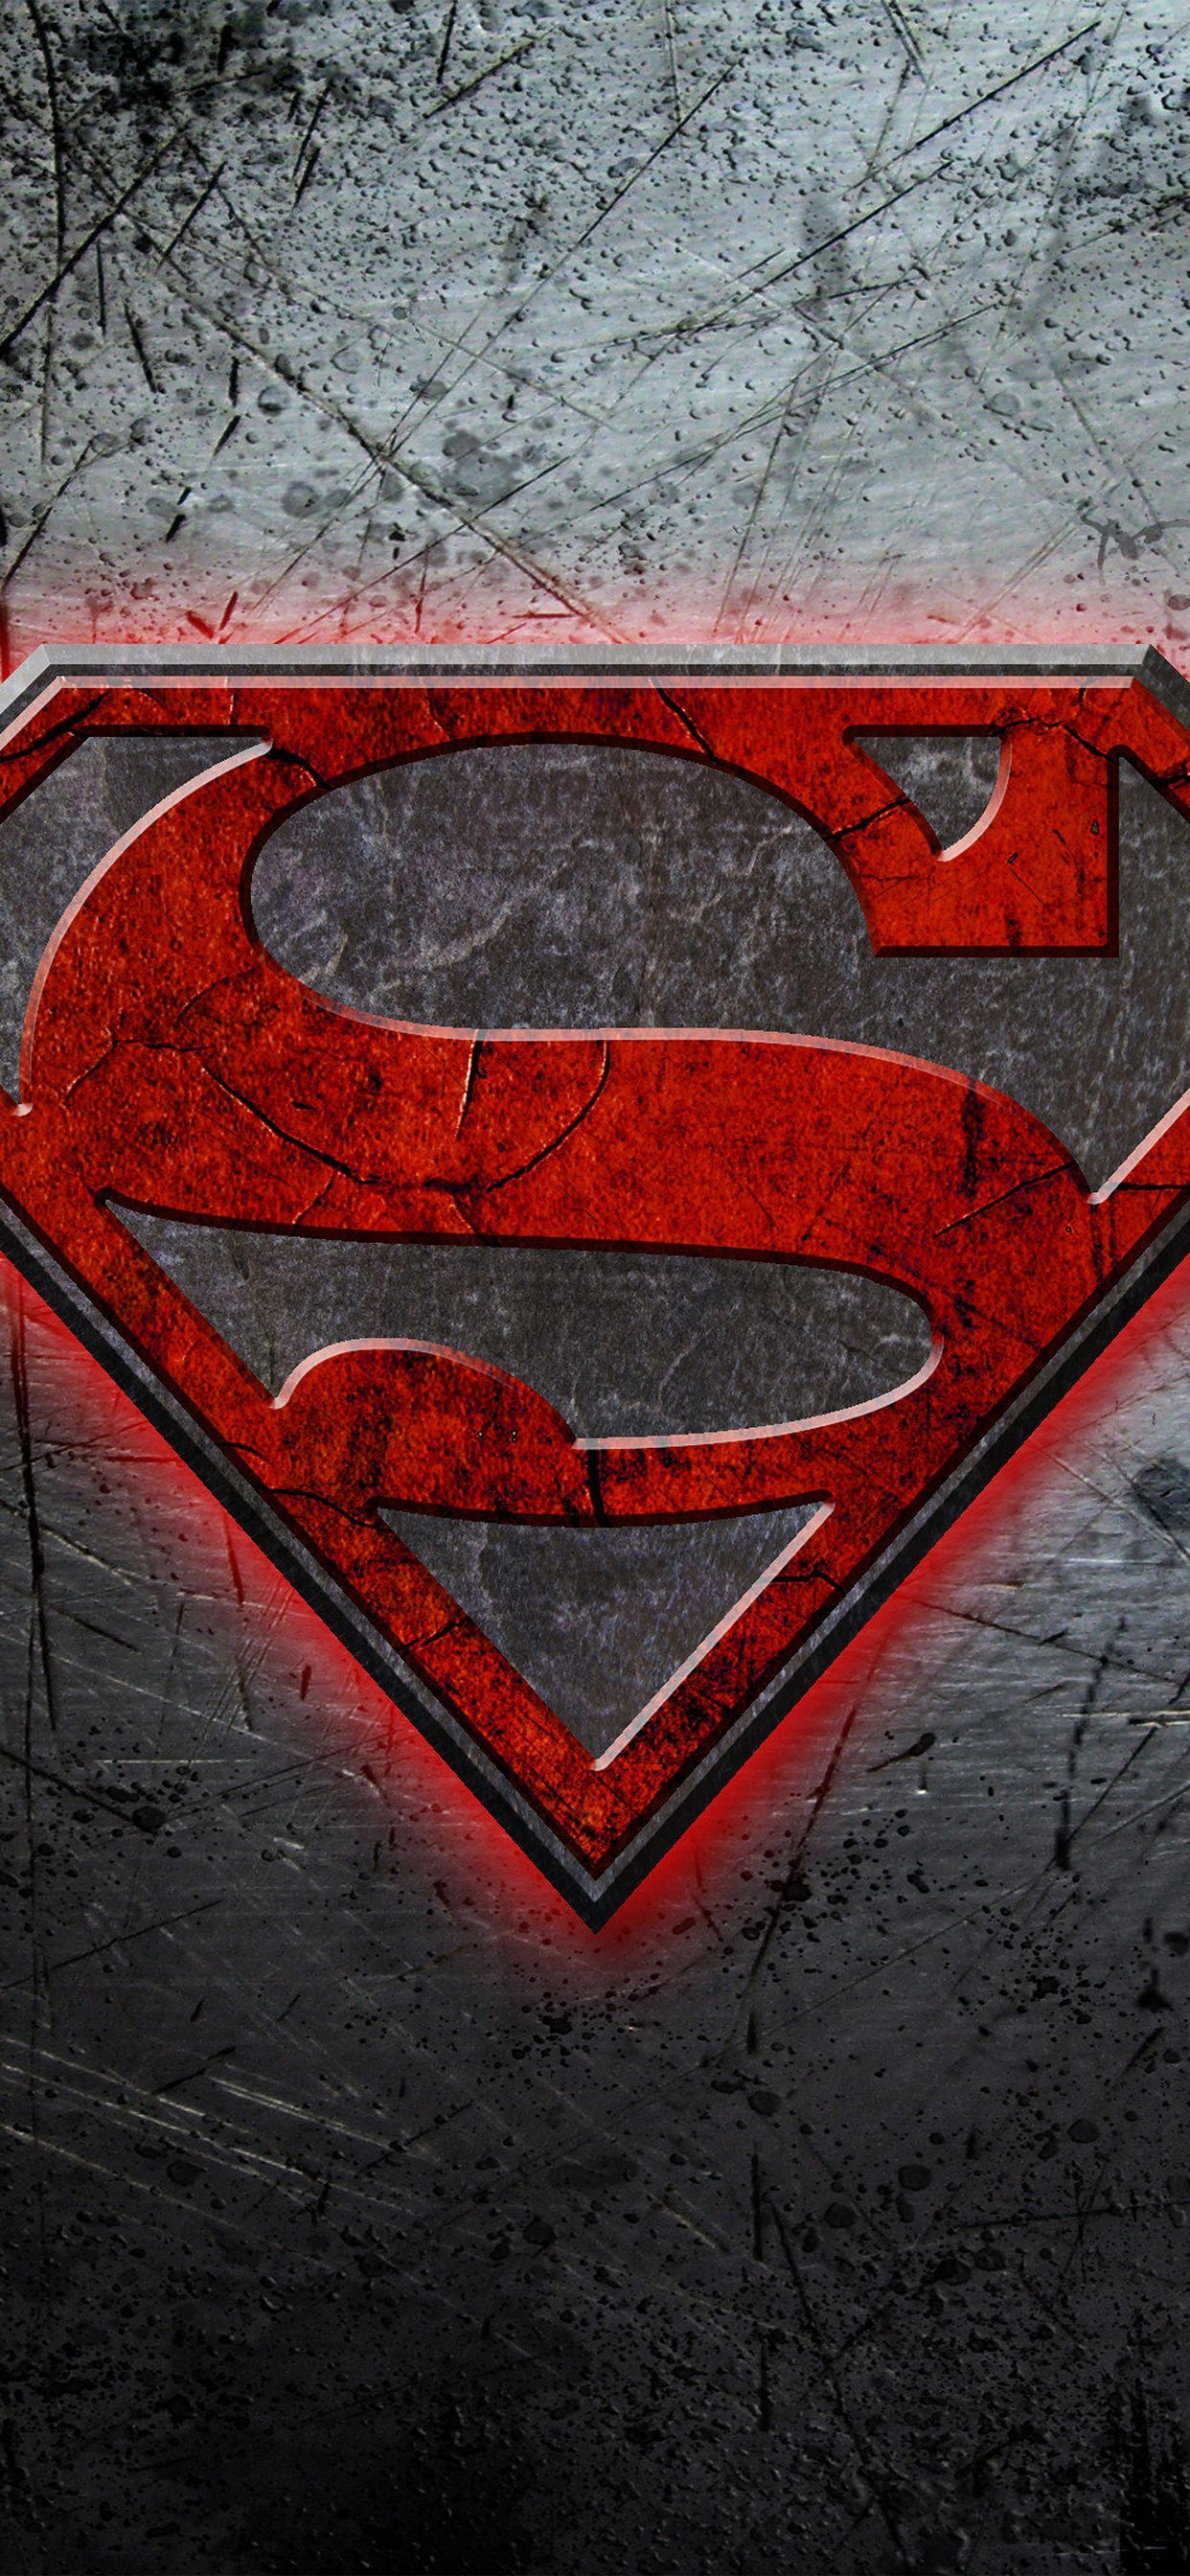 Apple Iphone Xs Max Wallpapers Superman Wallpaper Logo Superman Wallpaper Iphone Wallpaper